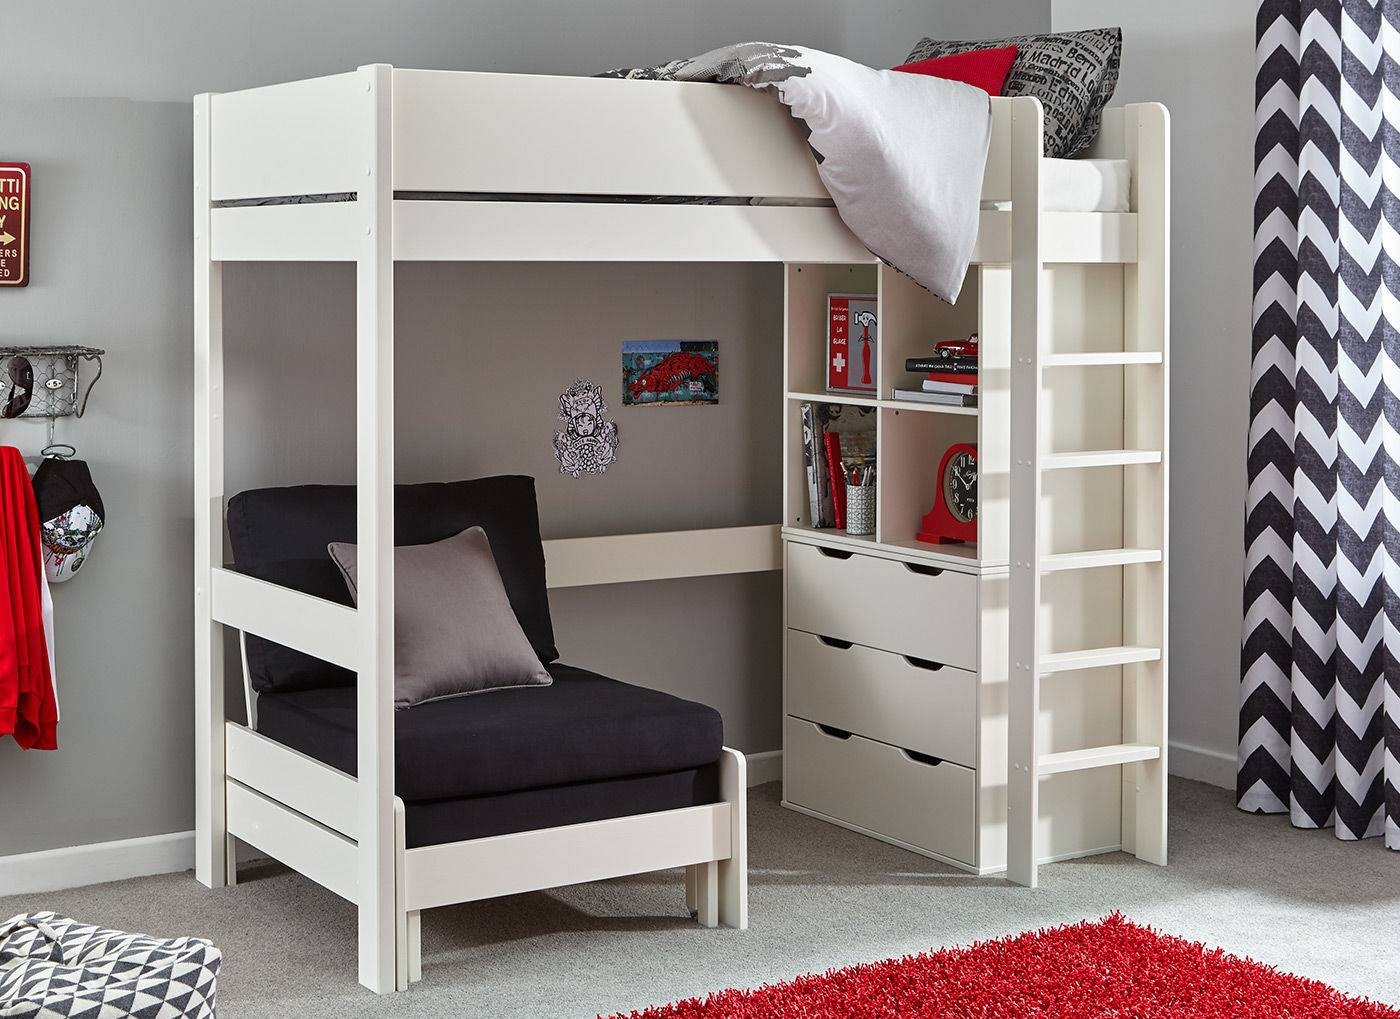 Buy Kids' High Sleepers At Dreams | Quality & Fun High Sleeper pertaining to High Sleeper With Wardrobes and Futon (Image 2 of 15)